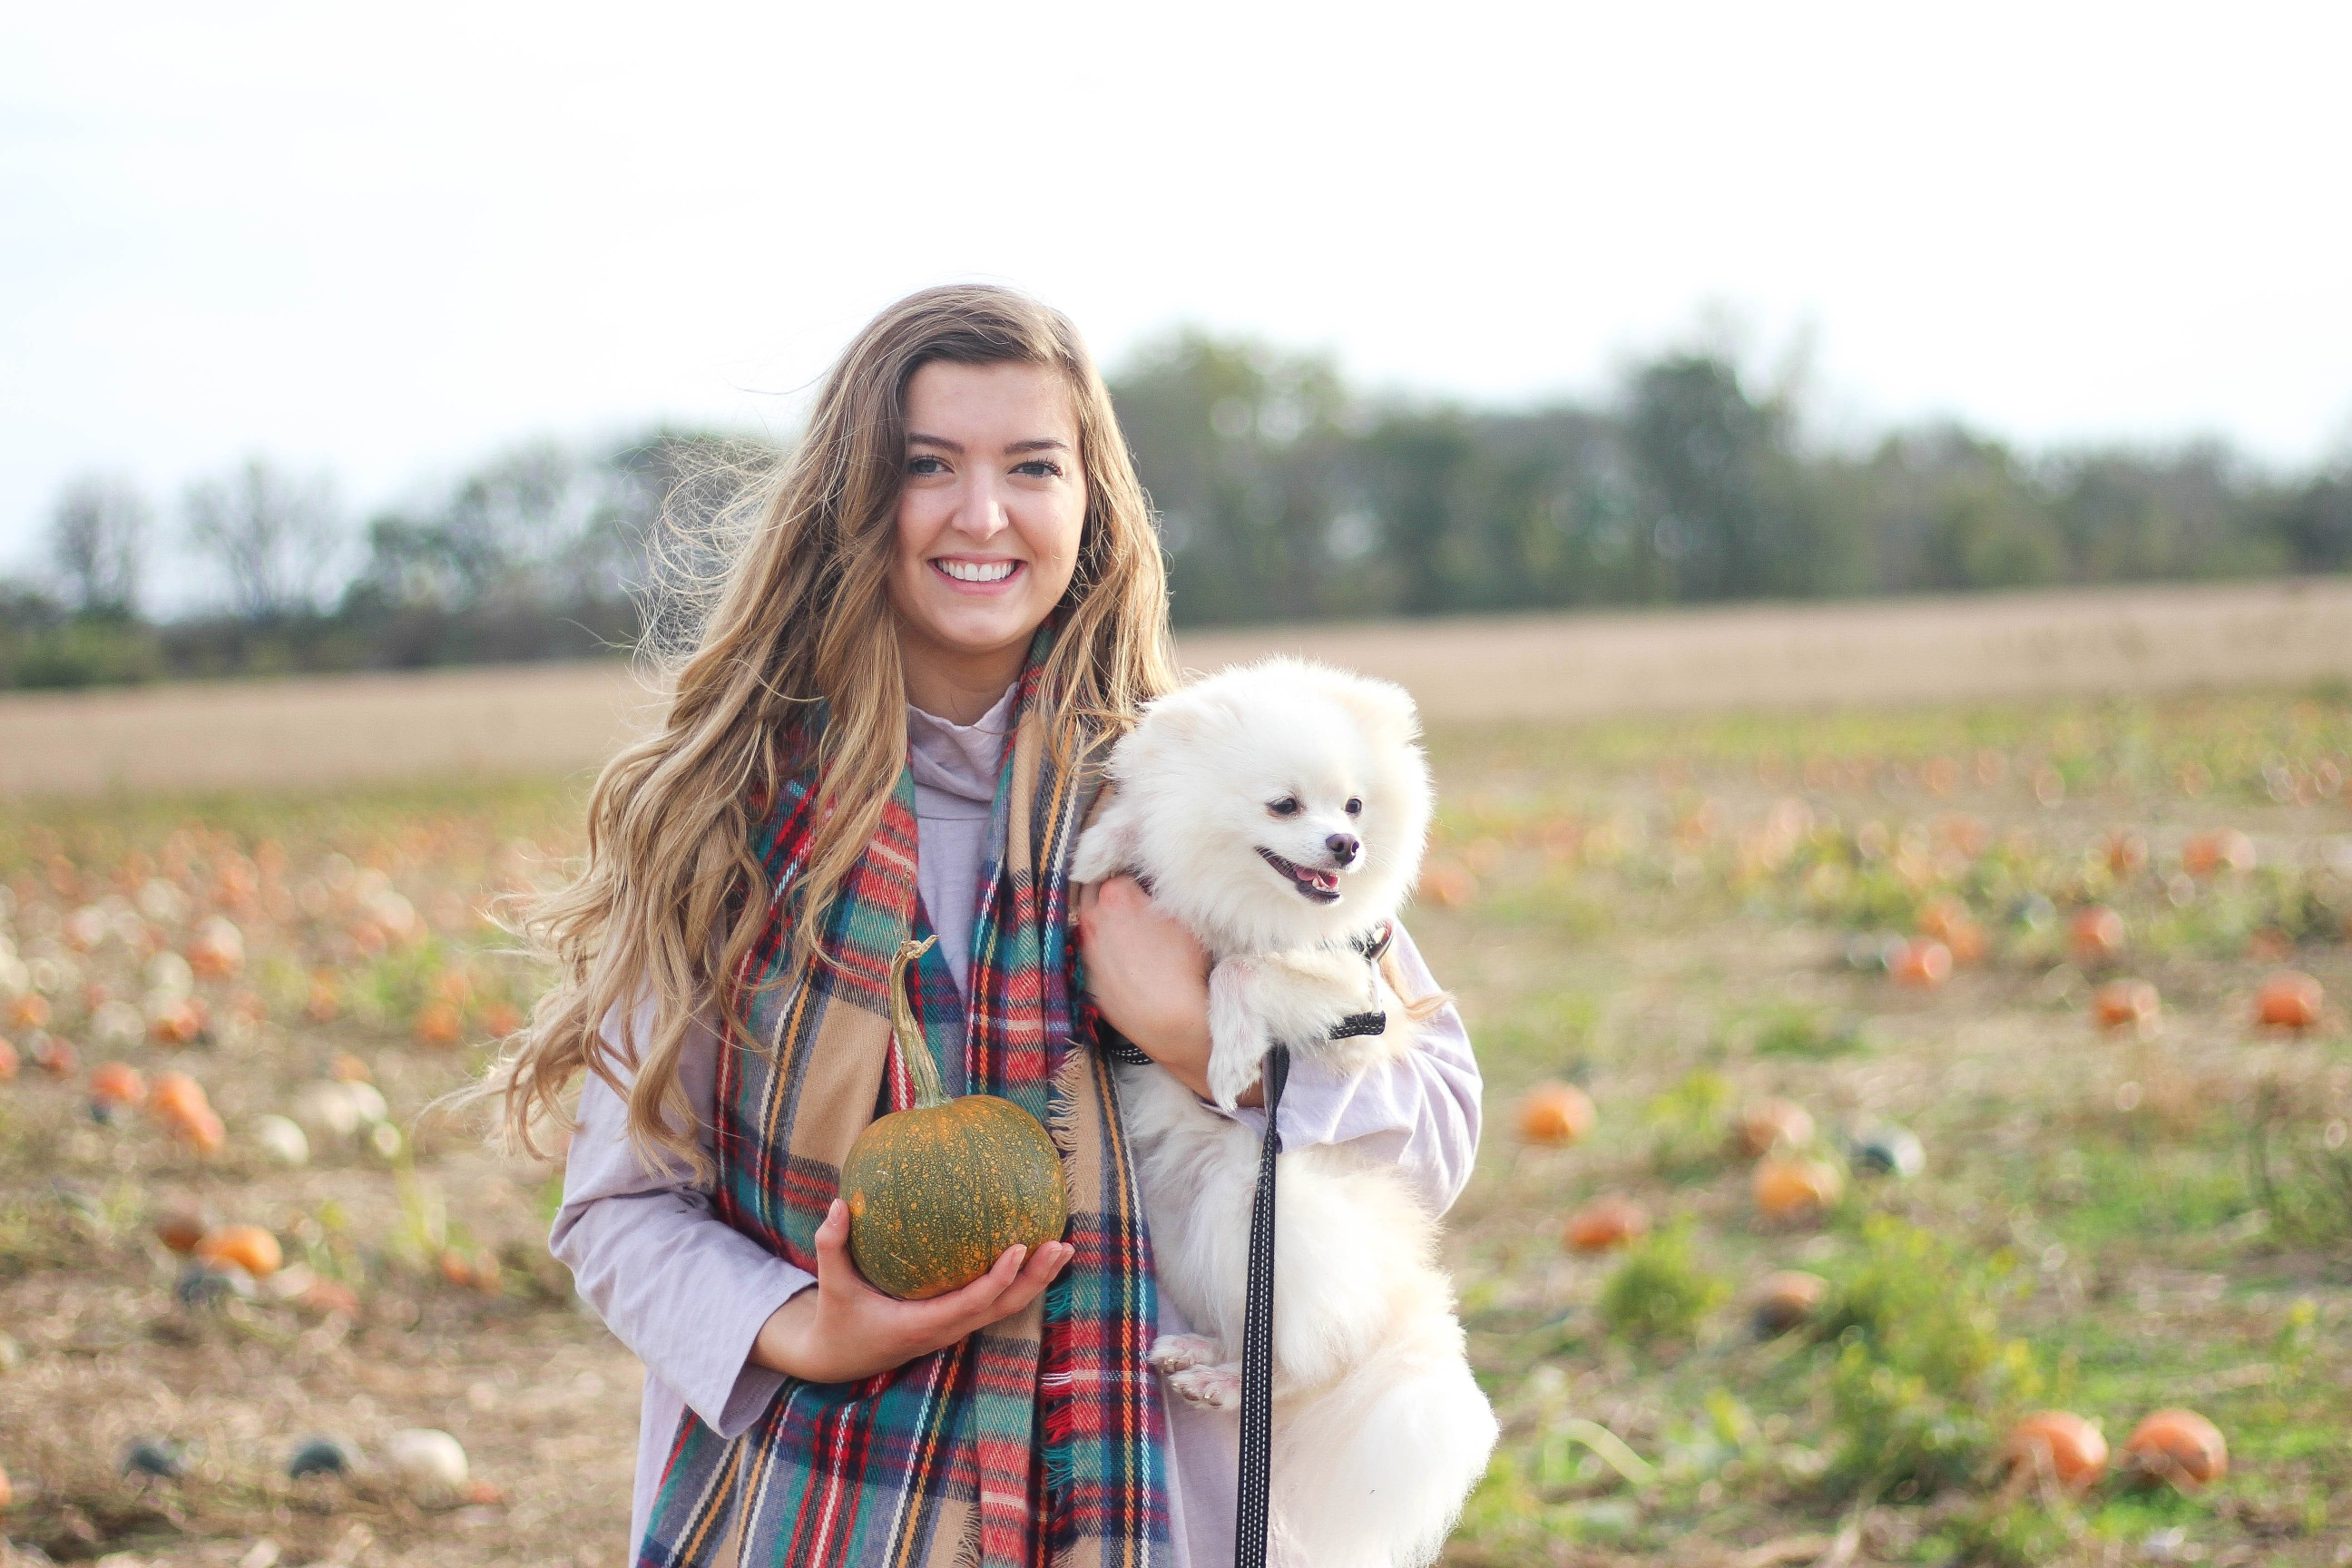 Pumpkin Patch OOTD and trying pumpkin spice foods (VIDEO) on daily dose of charm by lauren lindmark